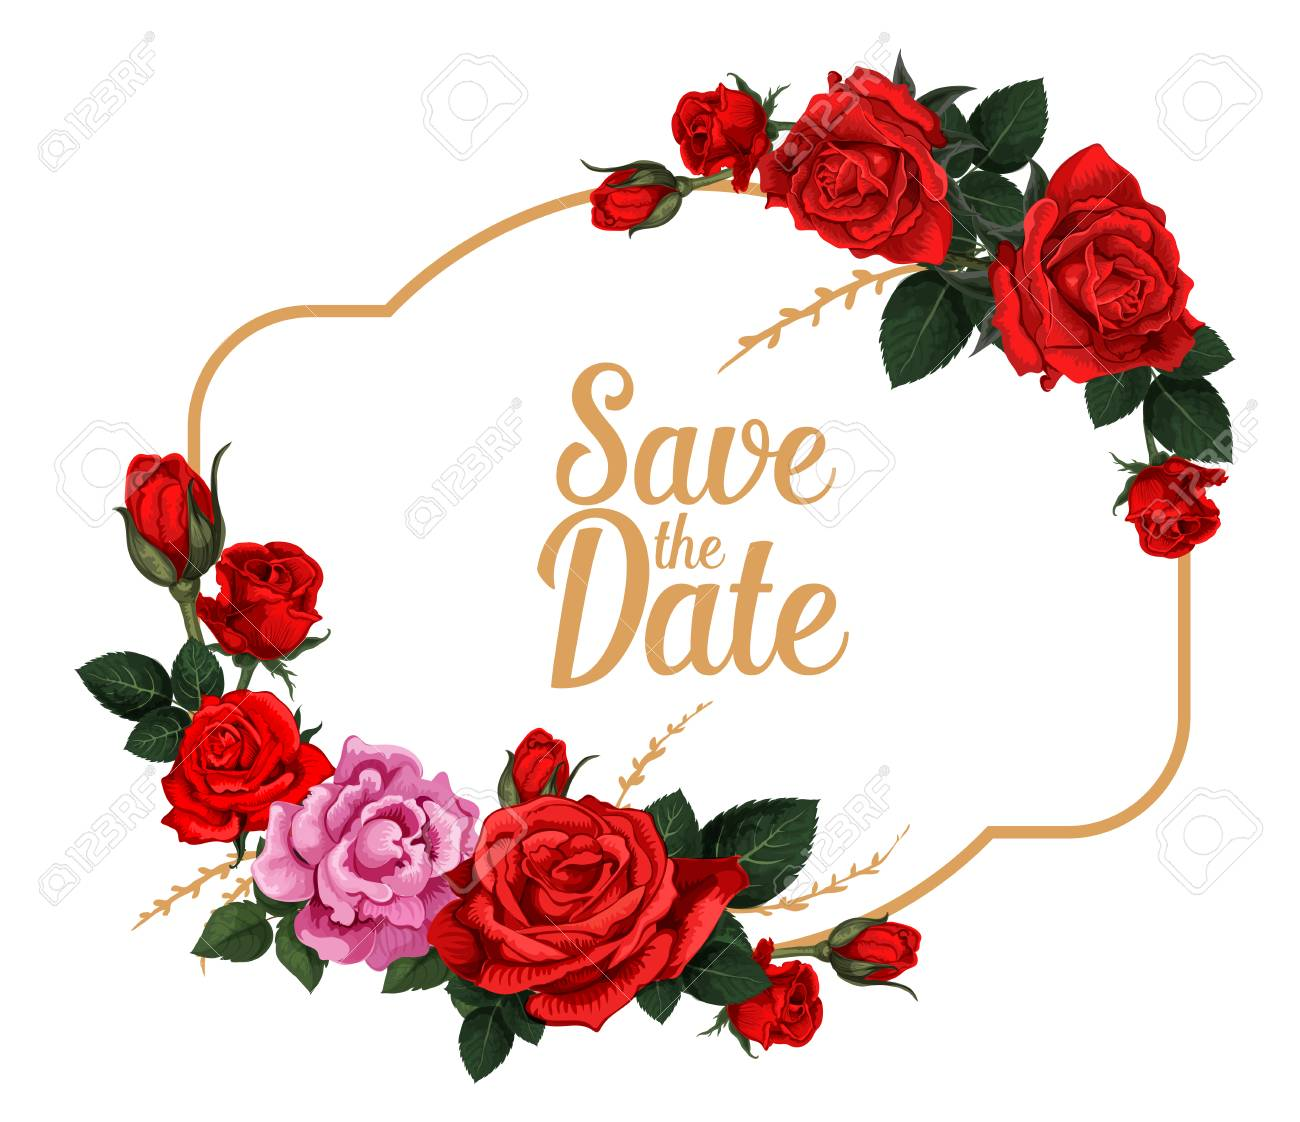 Save The Date Rose Flower Card For Wedding Invitation Design